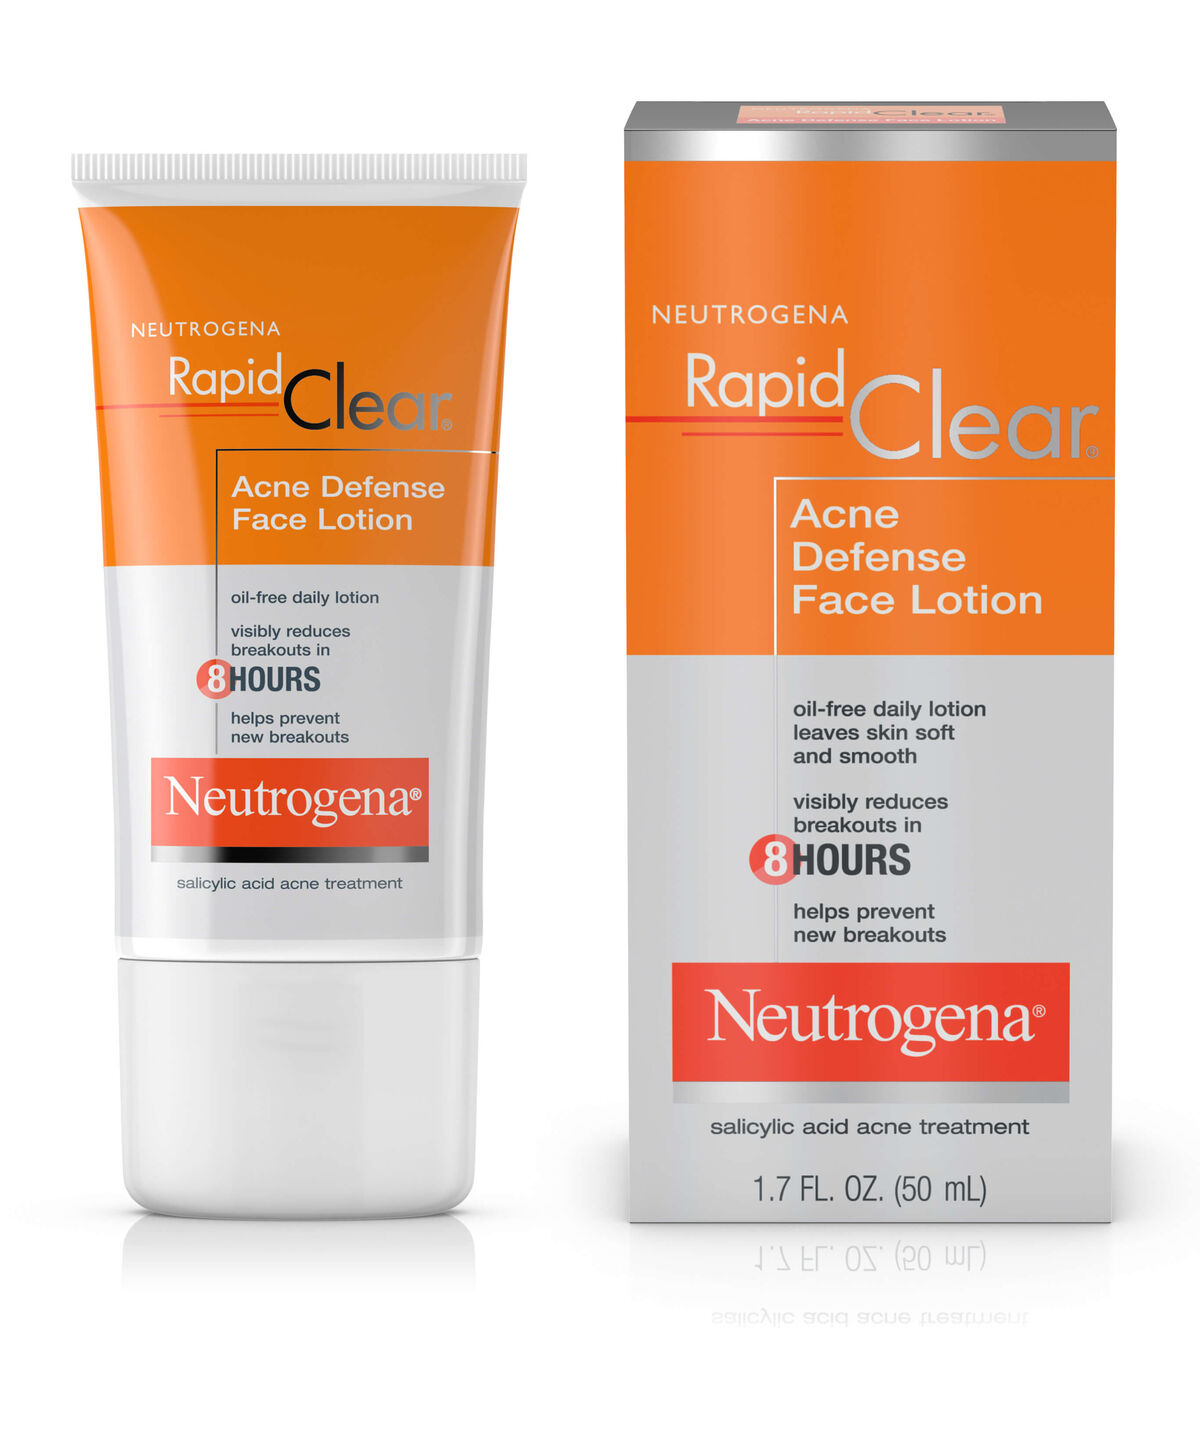 Neutrogena rapid clear acne defense face lotion neutrogena neutrogena rapid clear acne defense face lotion ccuart Gallery